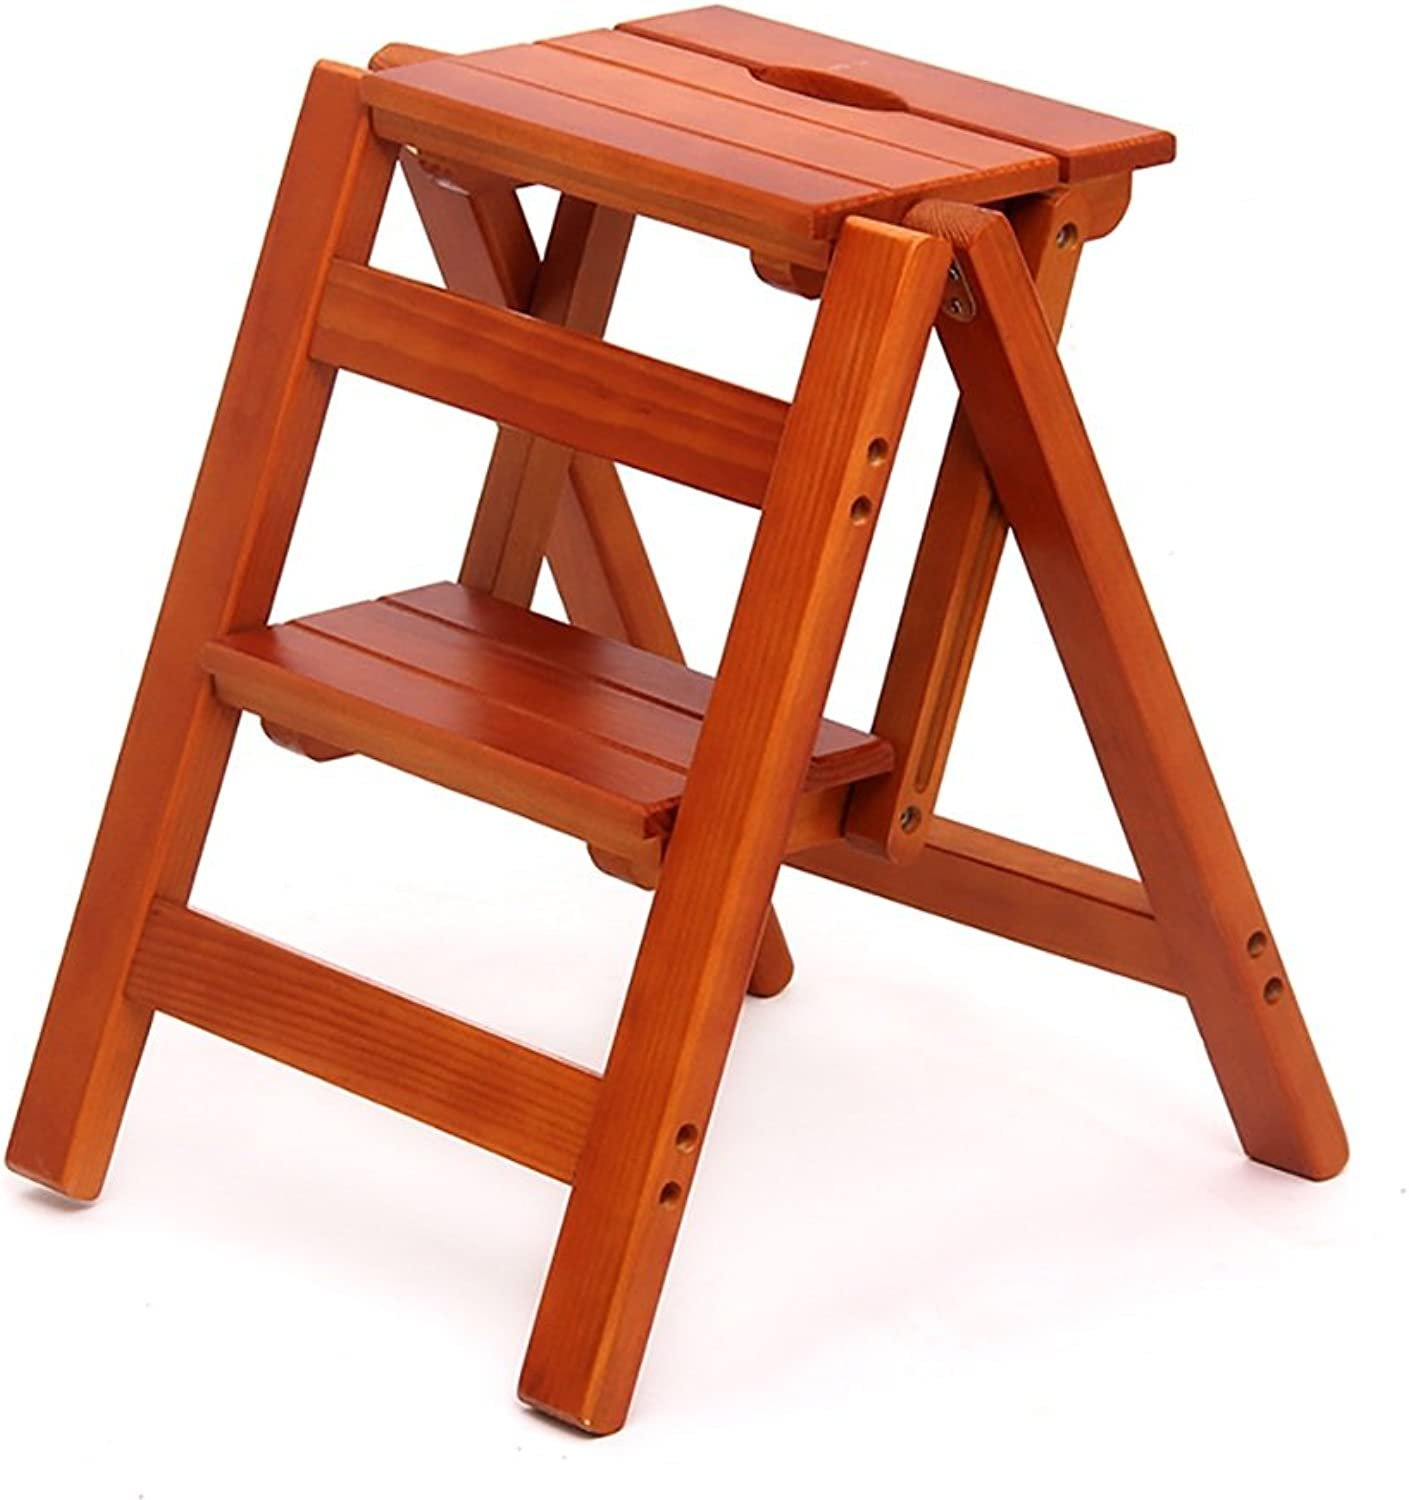 GSHWJS Step Stool Solid Wood Fold Stair Chair Household Ladder Two Steps Multifunction Indoor Ascend The Small Ladder Step Stool (color   A)